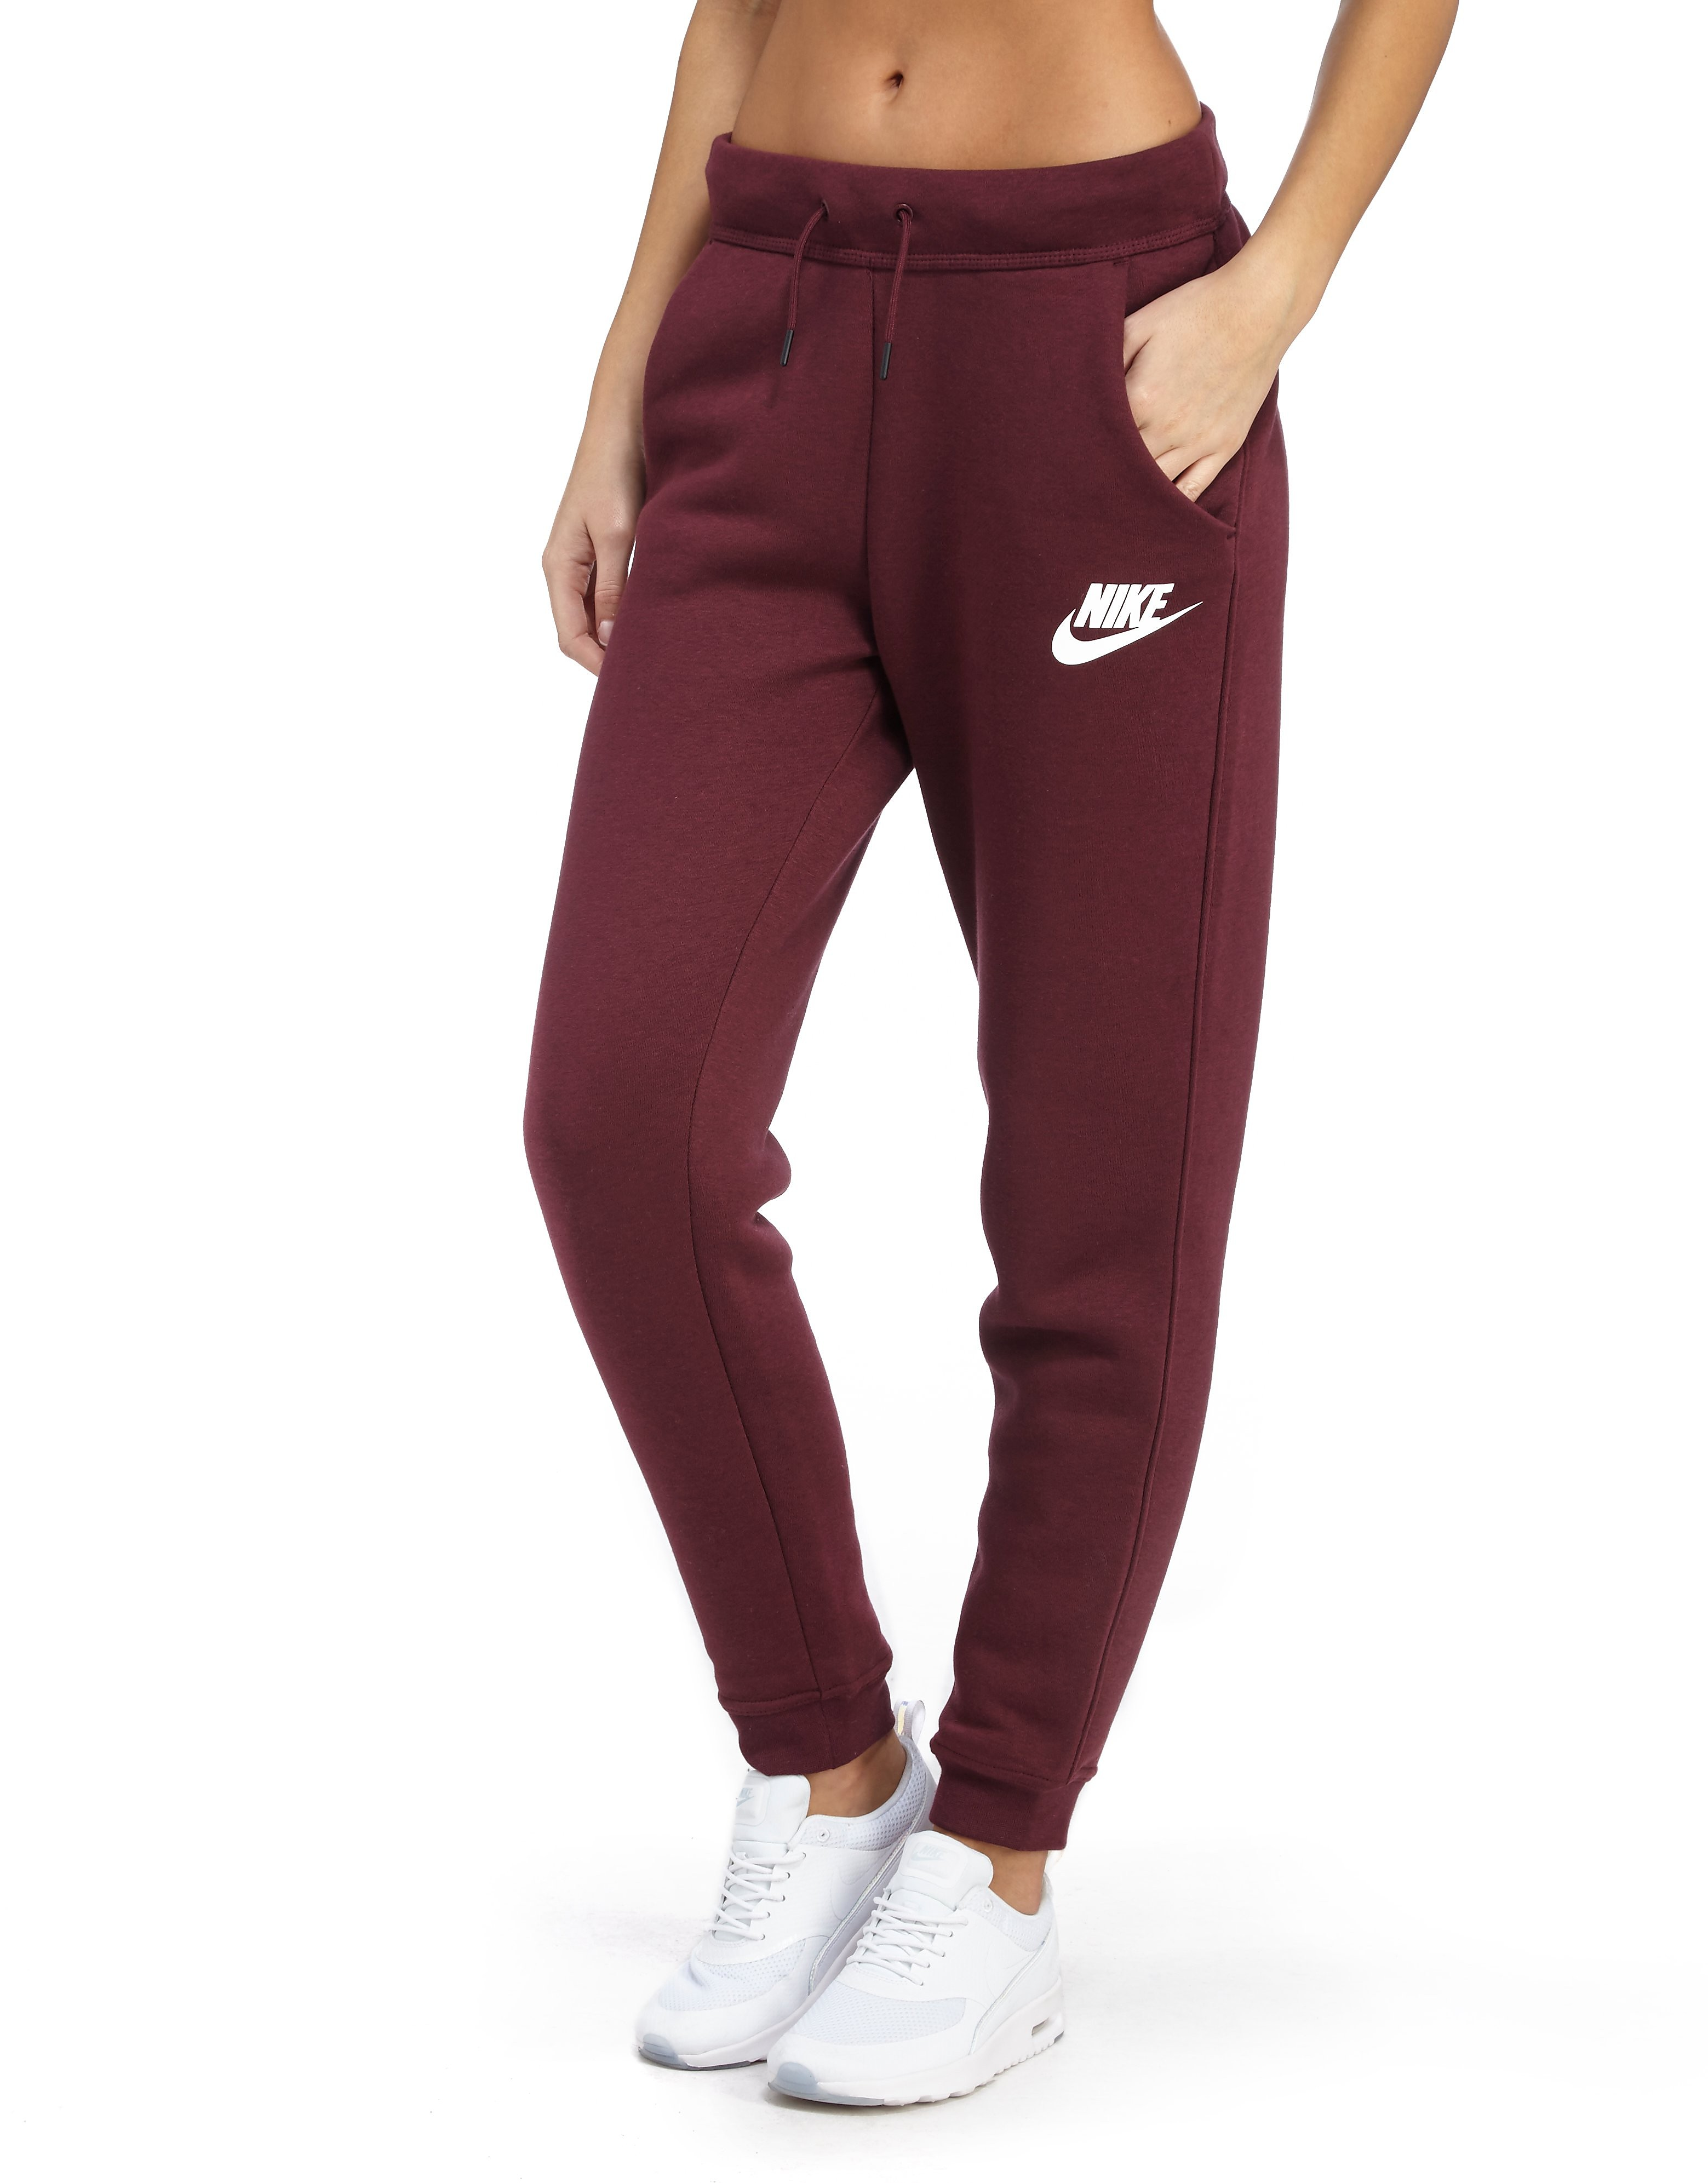 1b34c0ac4d02 Nike Rally Jogger - Burgundy White - Womens - Sports King Store